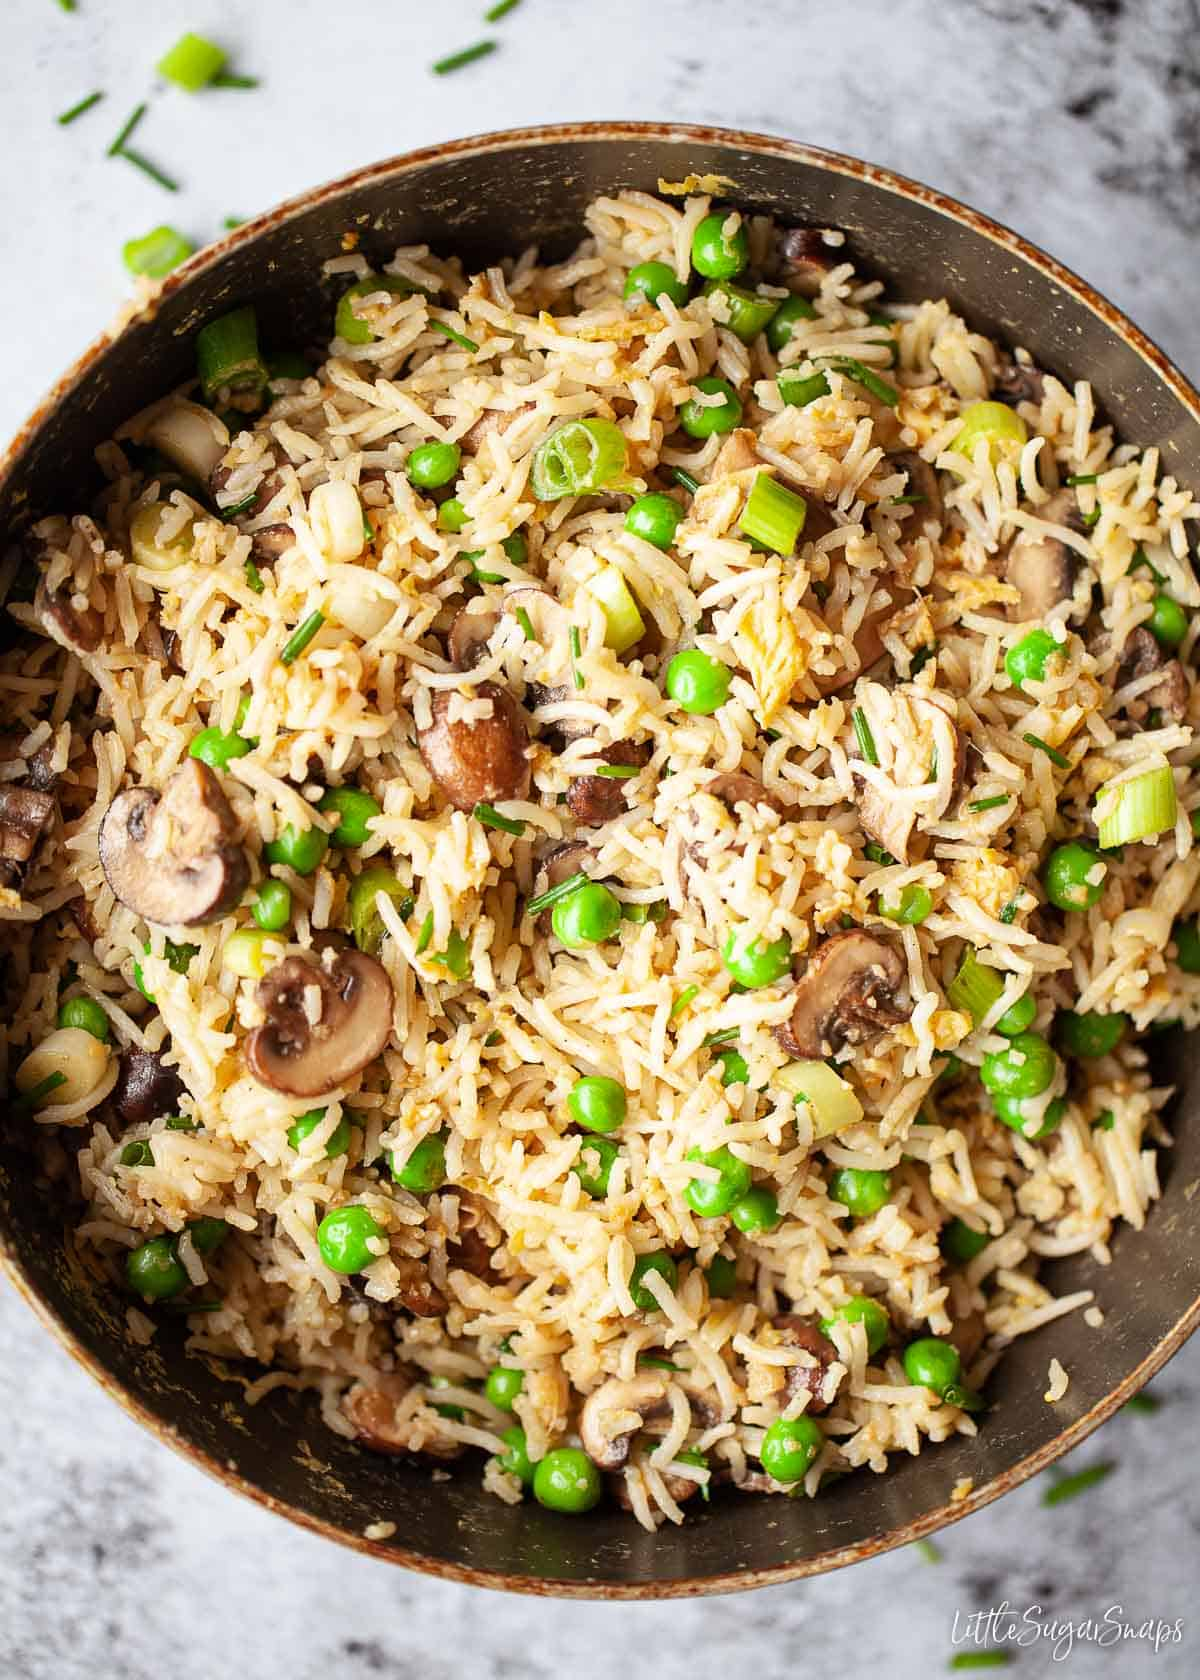 A pan of egg fried rice with mushrooms and peas